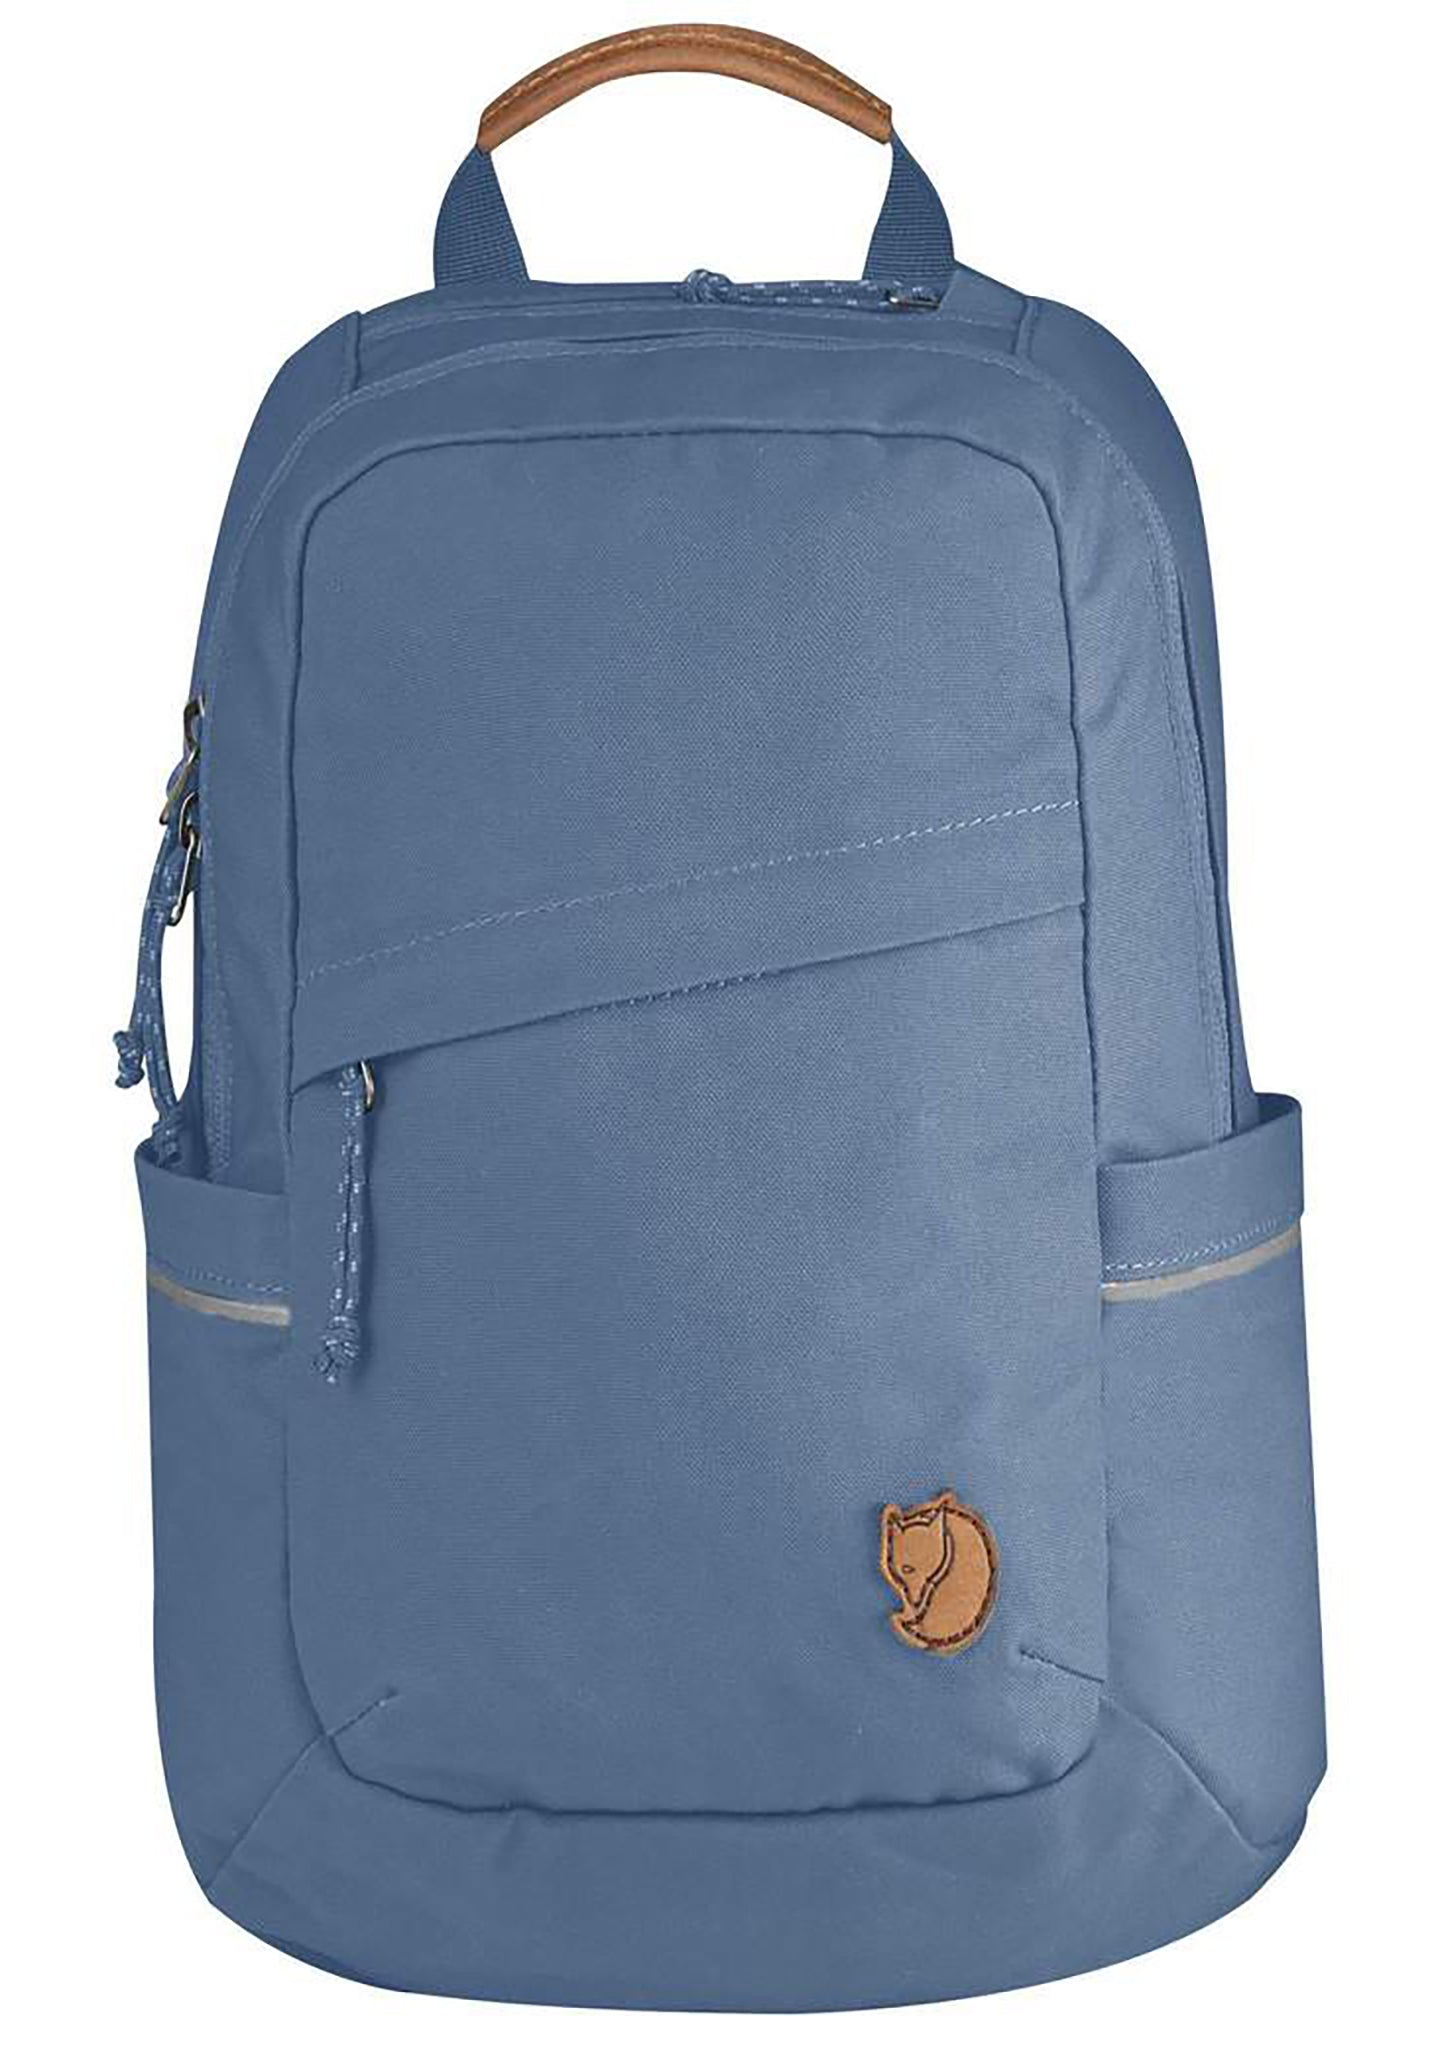 Fjallraven Raven Mini Backpack in Blue Ridge